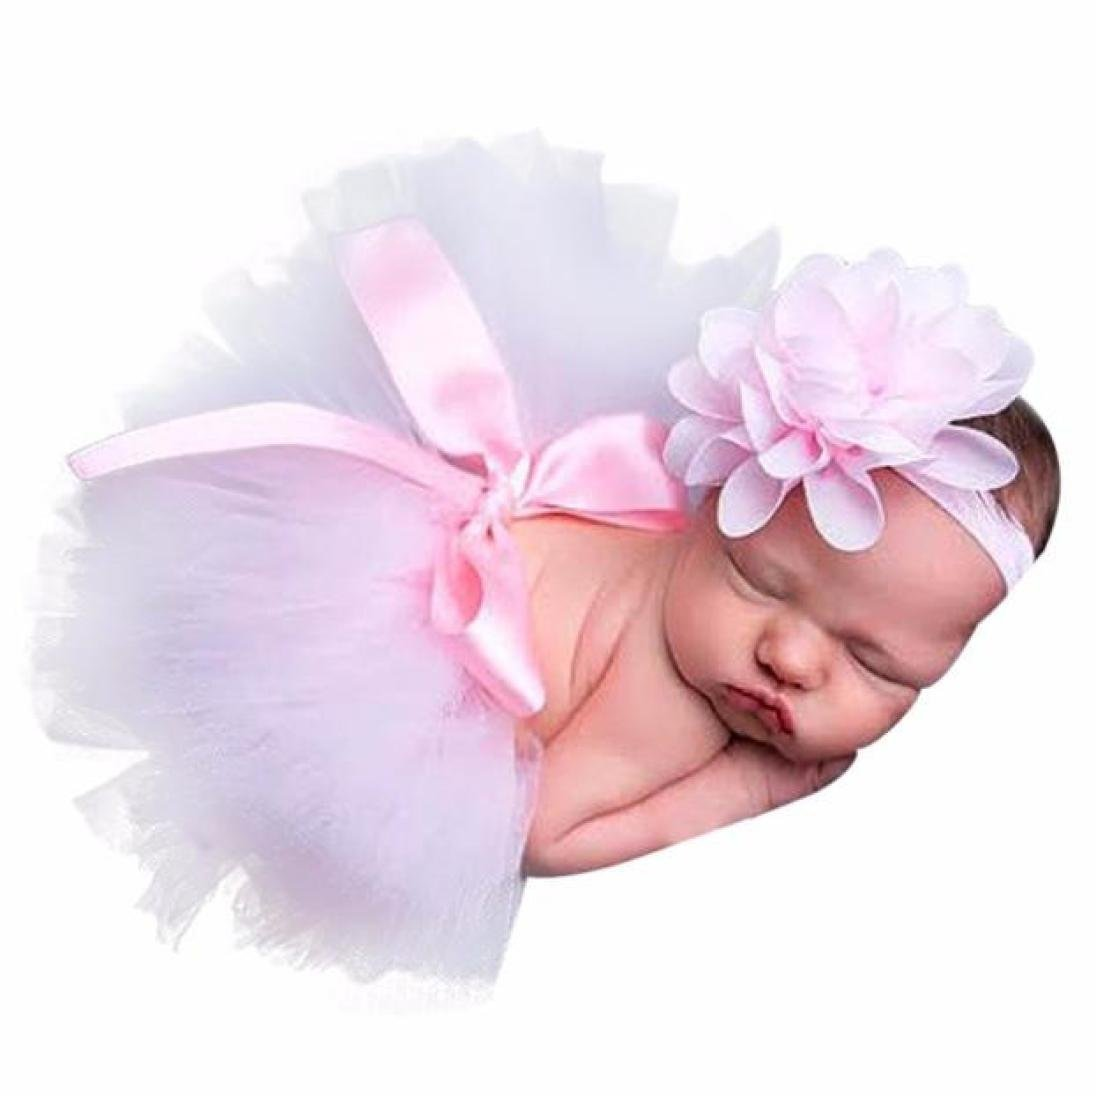 Evansamp Newborn Baby Girls Pink Flower Hairband Bowknot Tutu Skirt Photo Photography Costume Prop Outfits